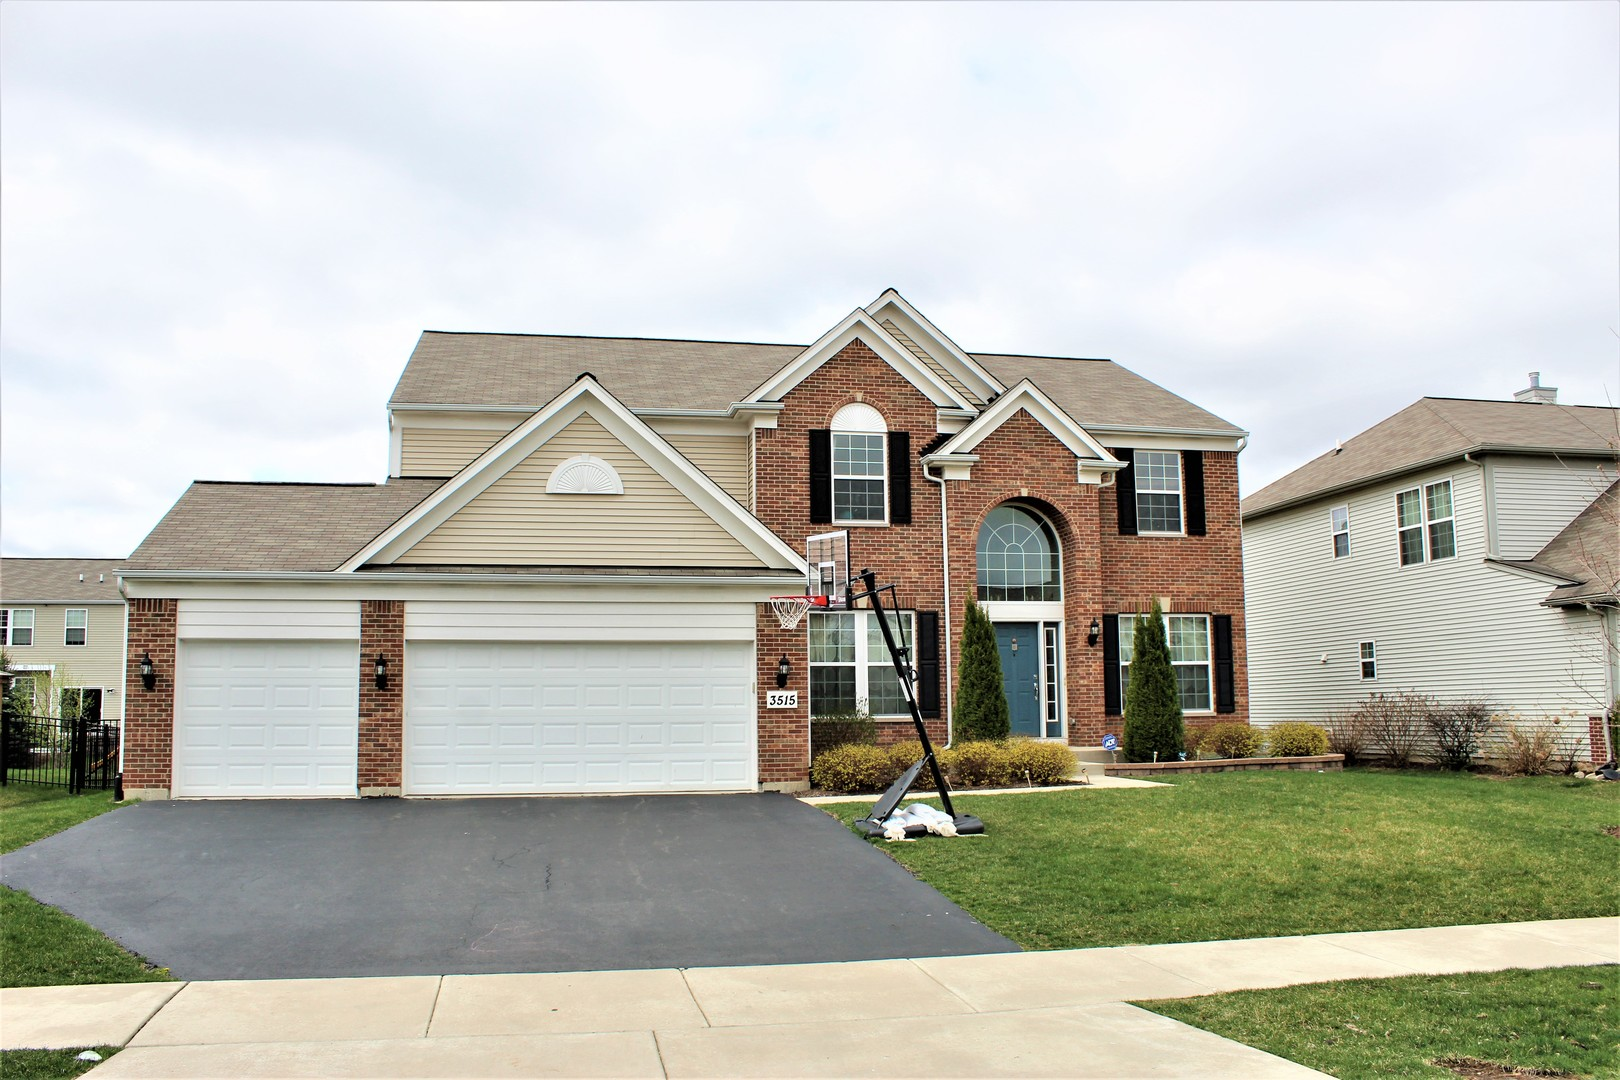 3515 CARLISLE LANE, CARPENTERSVILLE, IL 60110